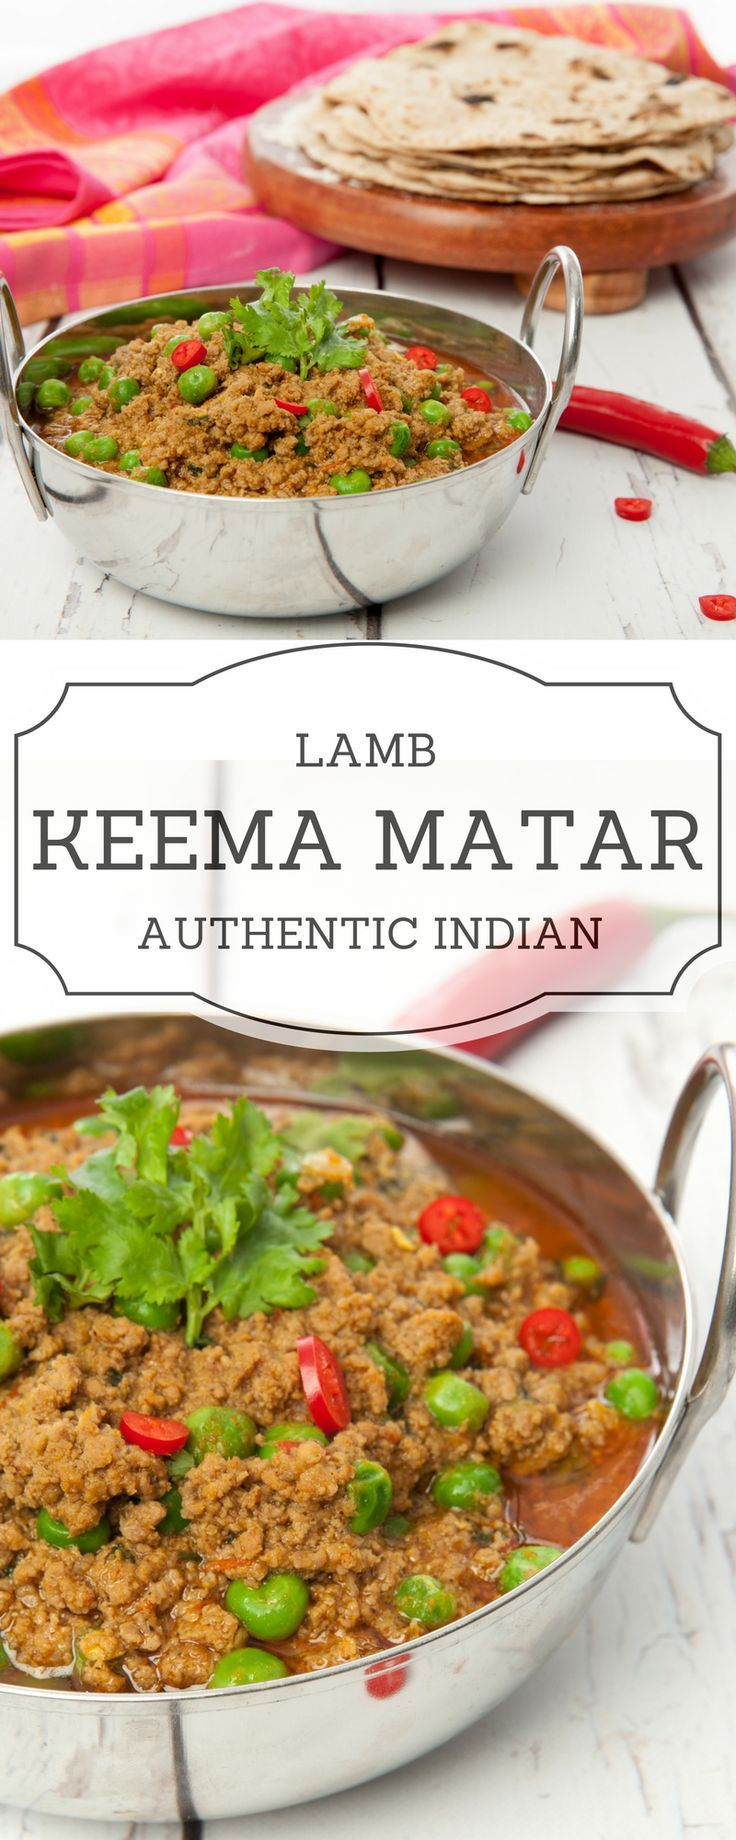 Indian lamb keema matar recipe 30 minute recipe thermomix and dishes forumfinder Choice Image